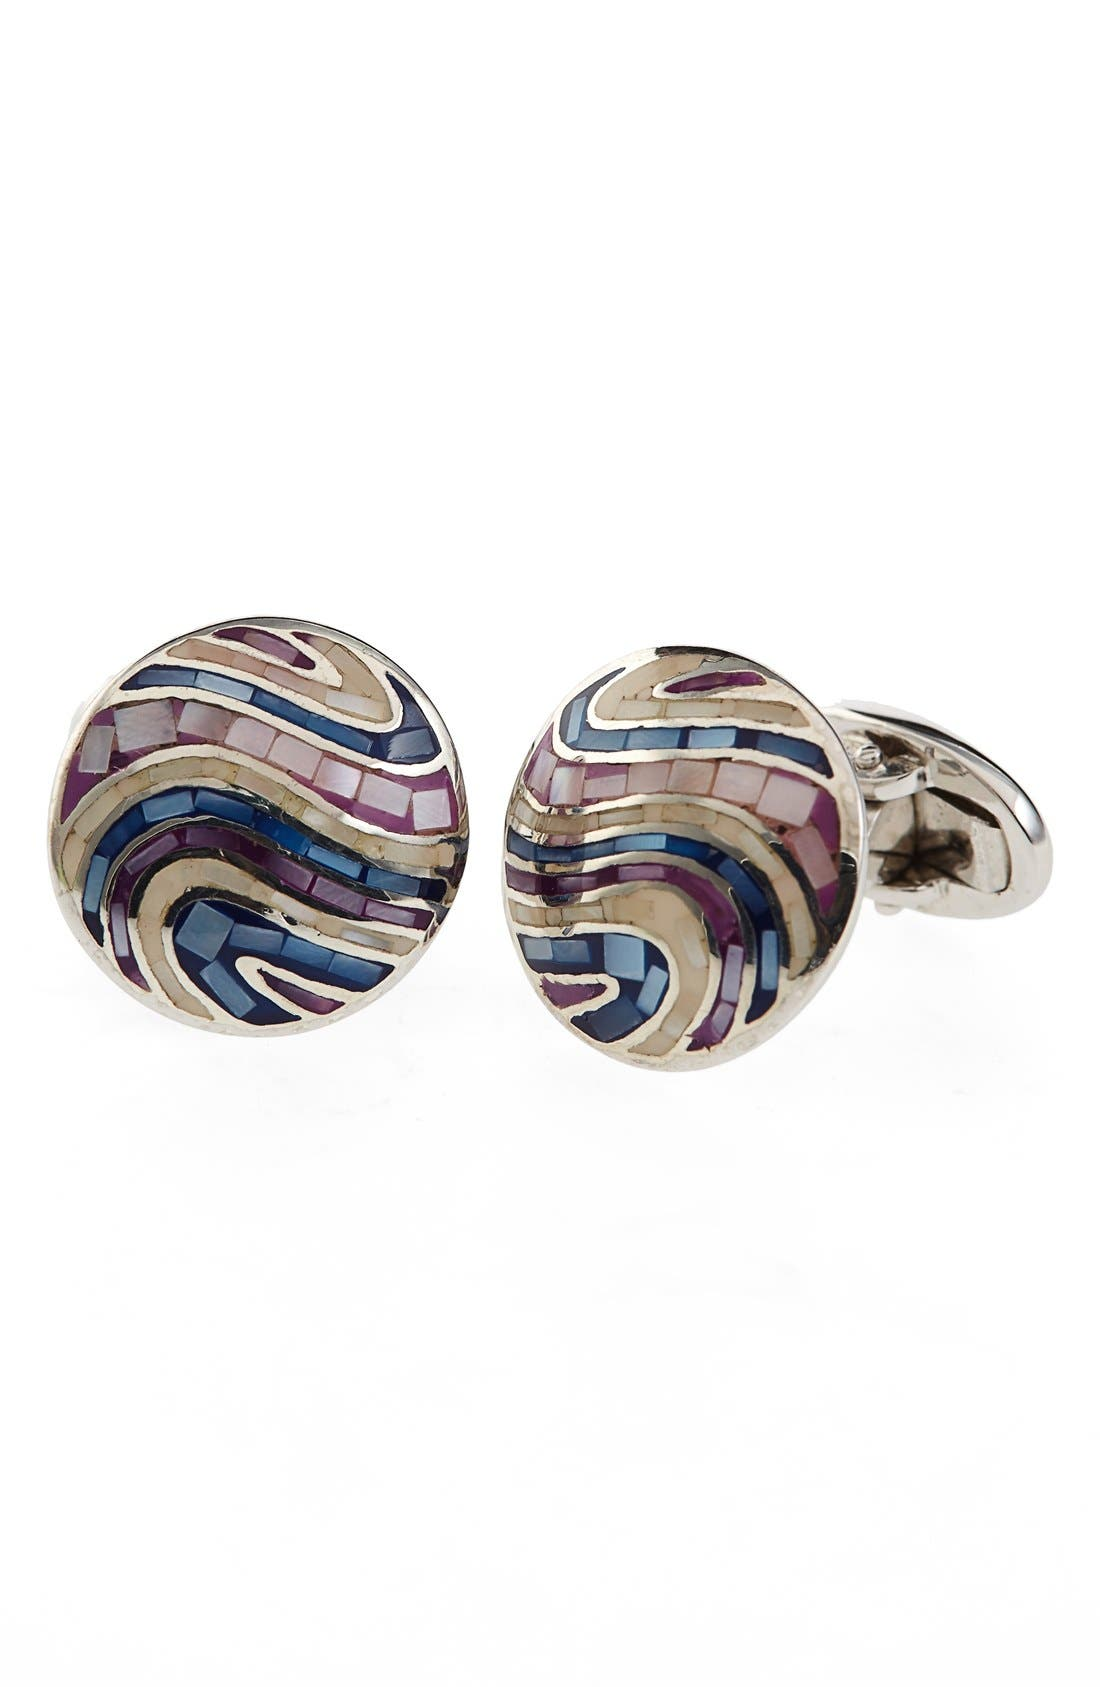 Mother-of-Pearl Tile Cuff Links,                             Main thumbnail 1, color,                             500